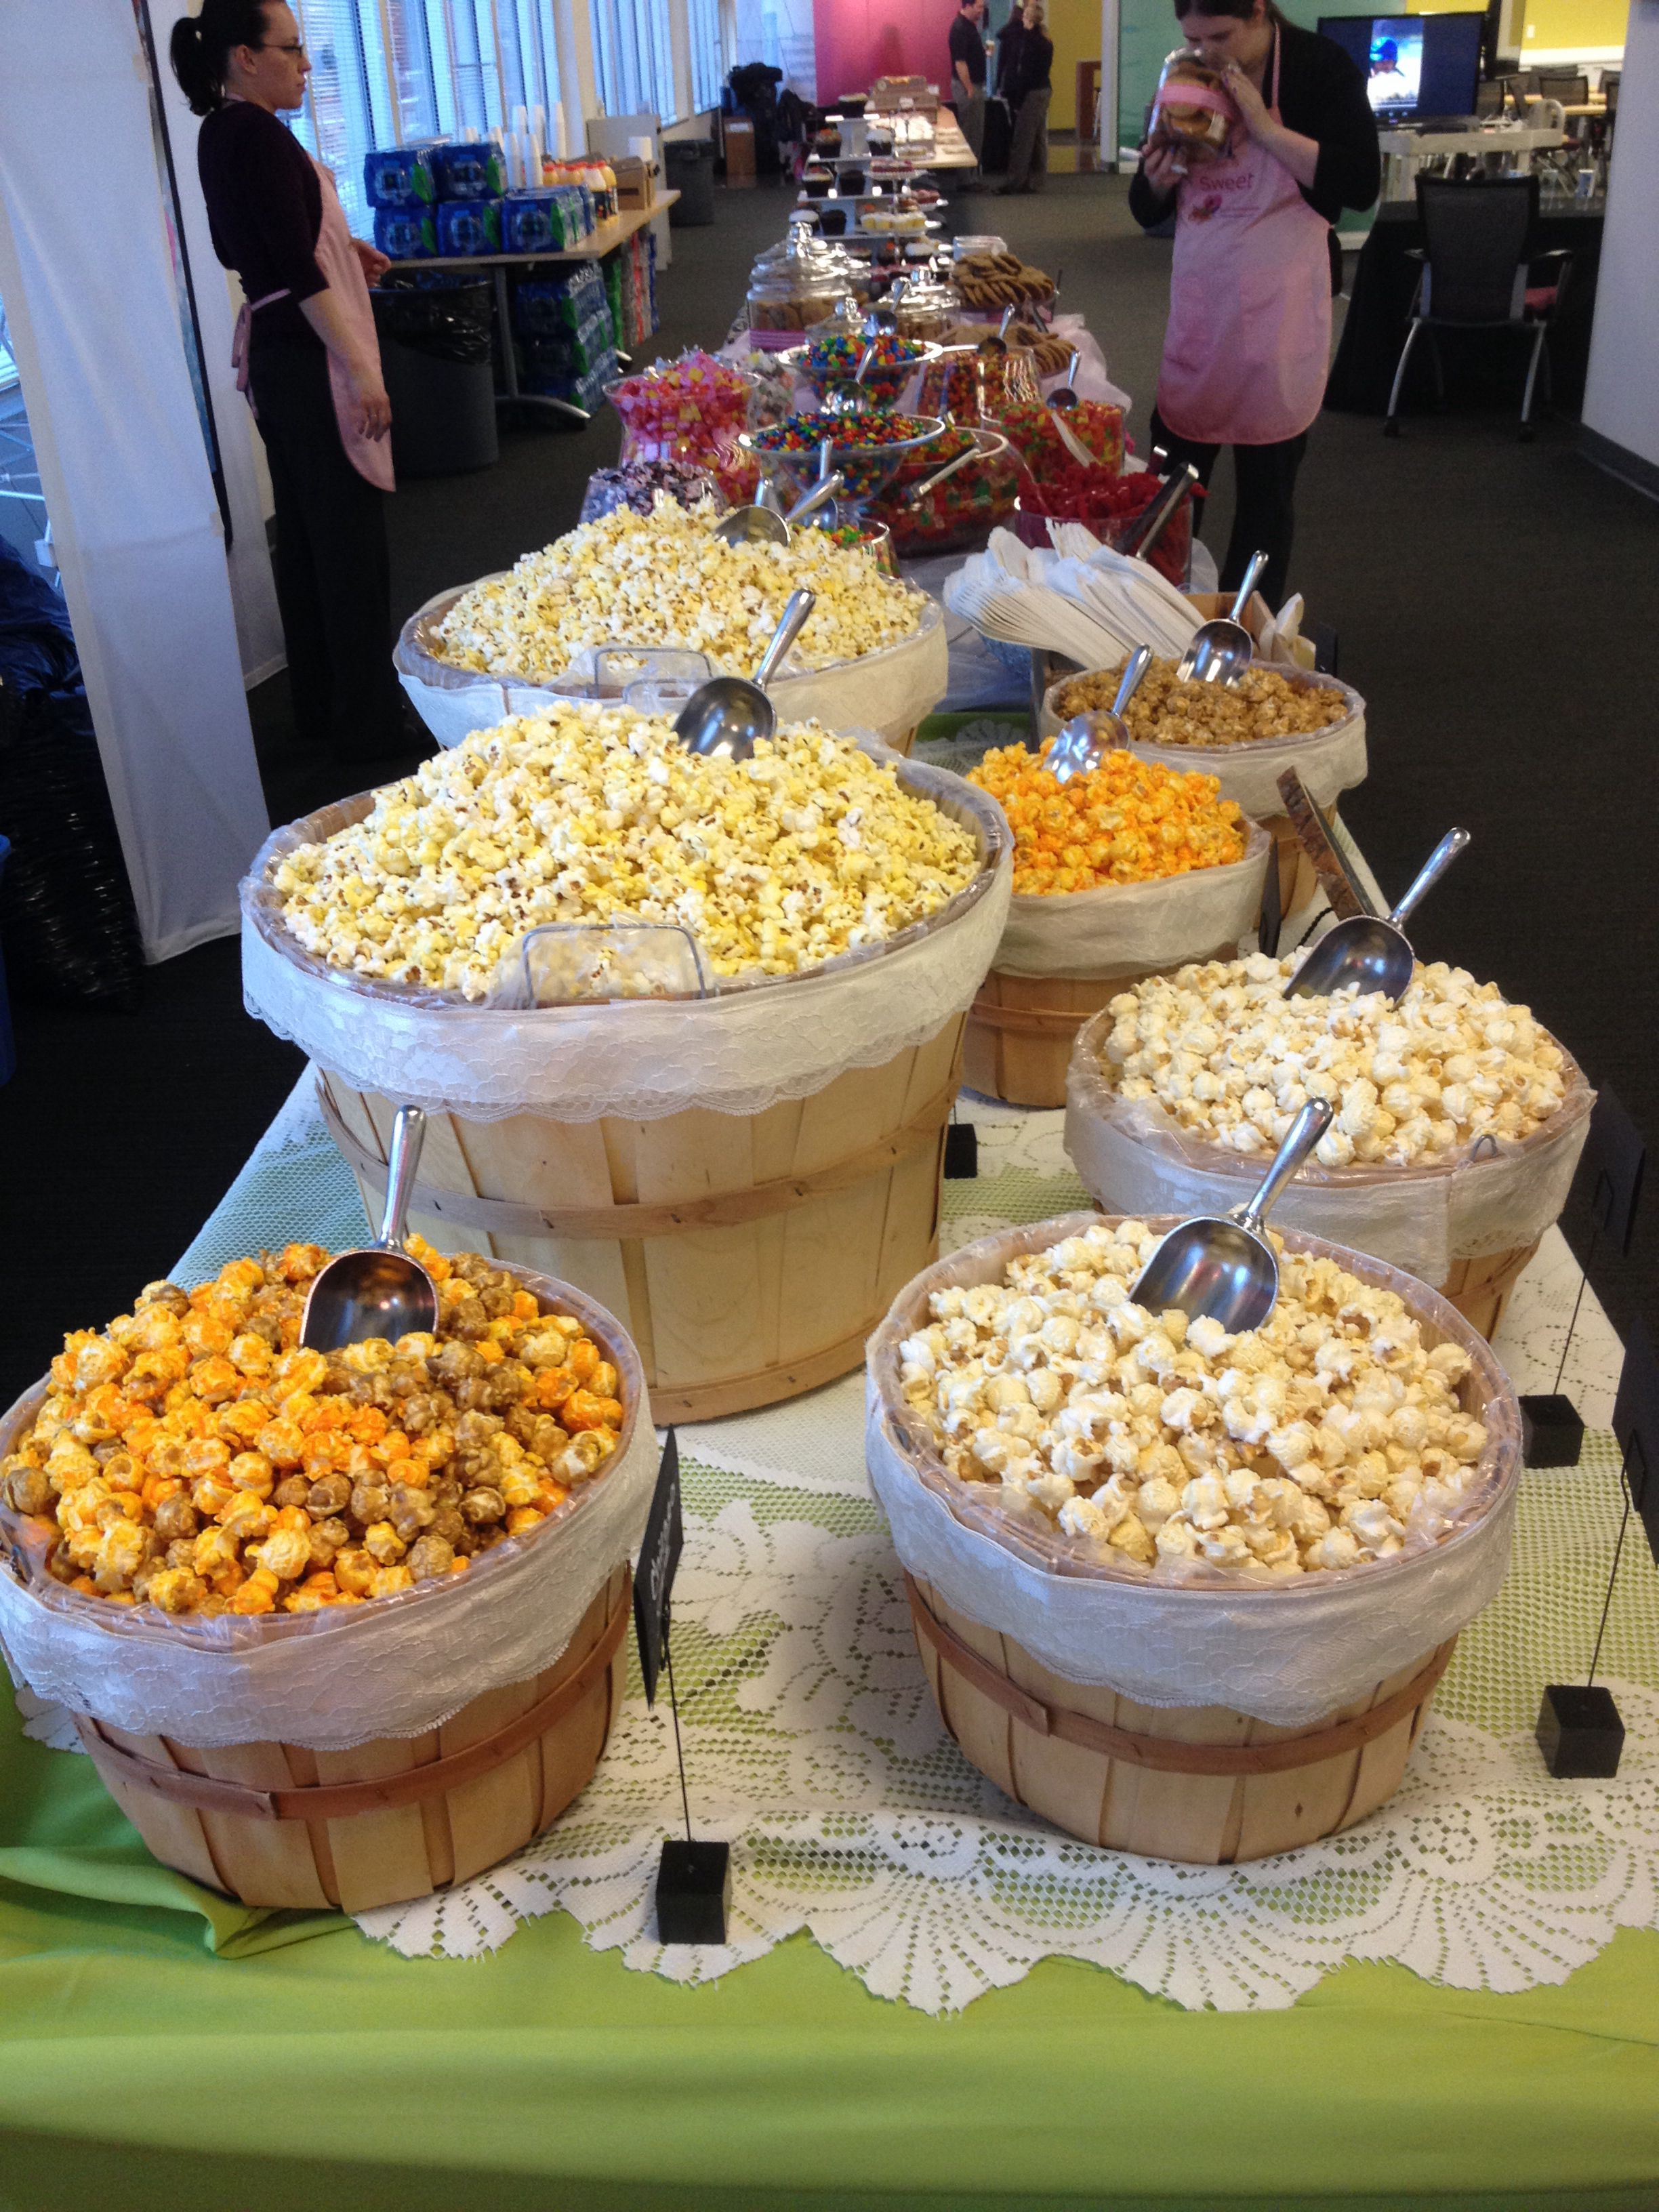 Table Snack Cuisine Popcorn Buffet 2 Sweet Buffets Pinterest